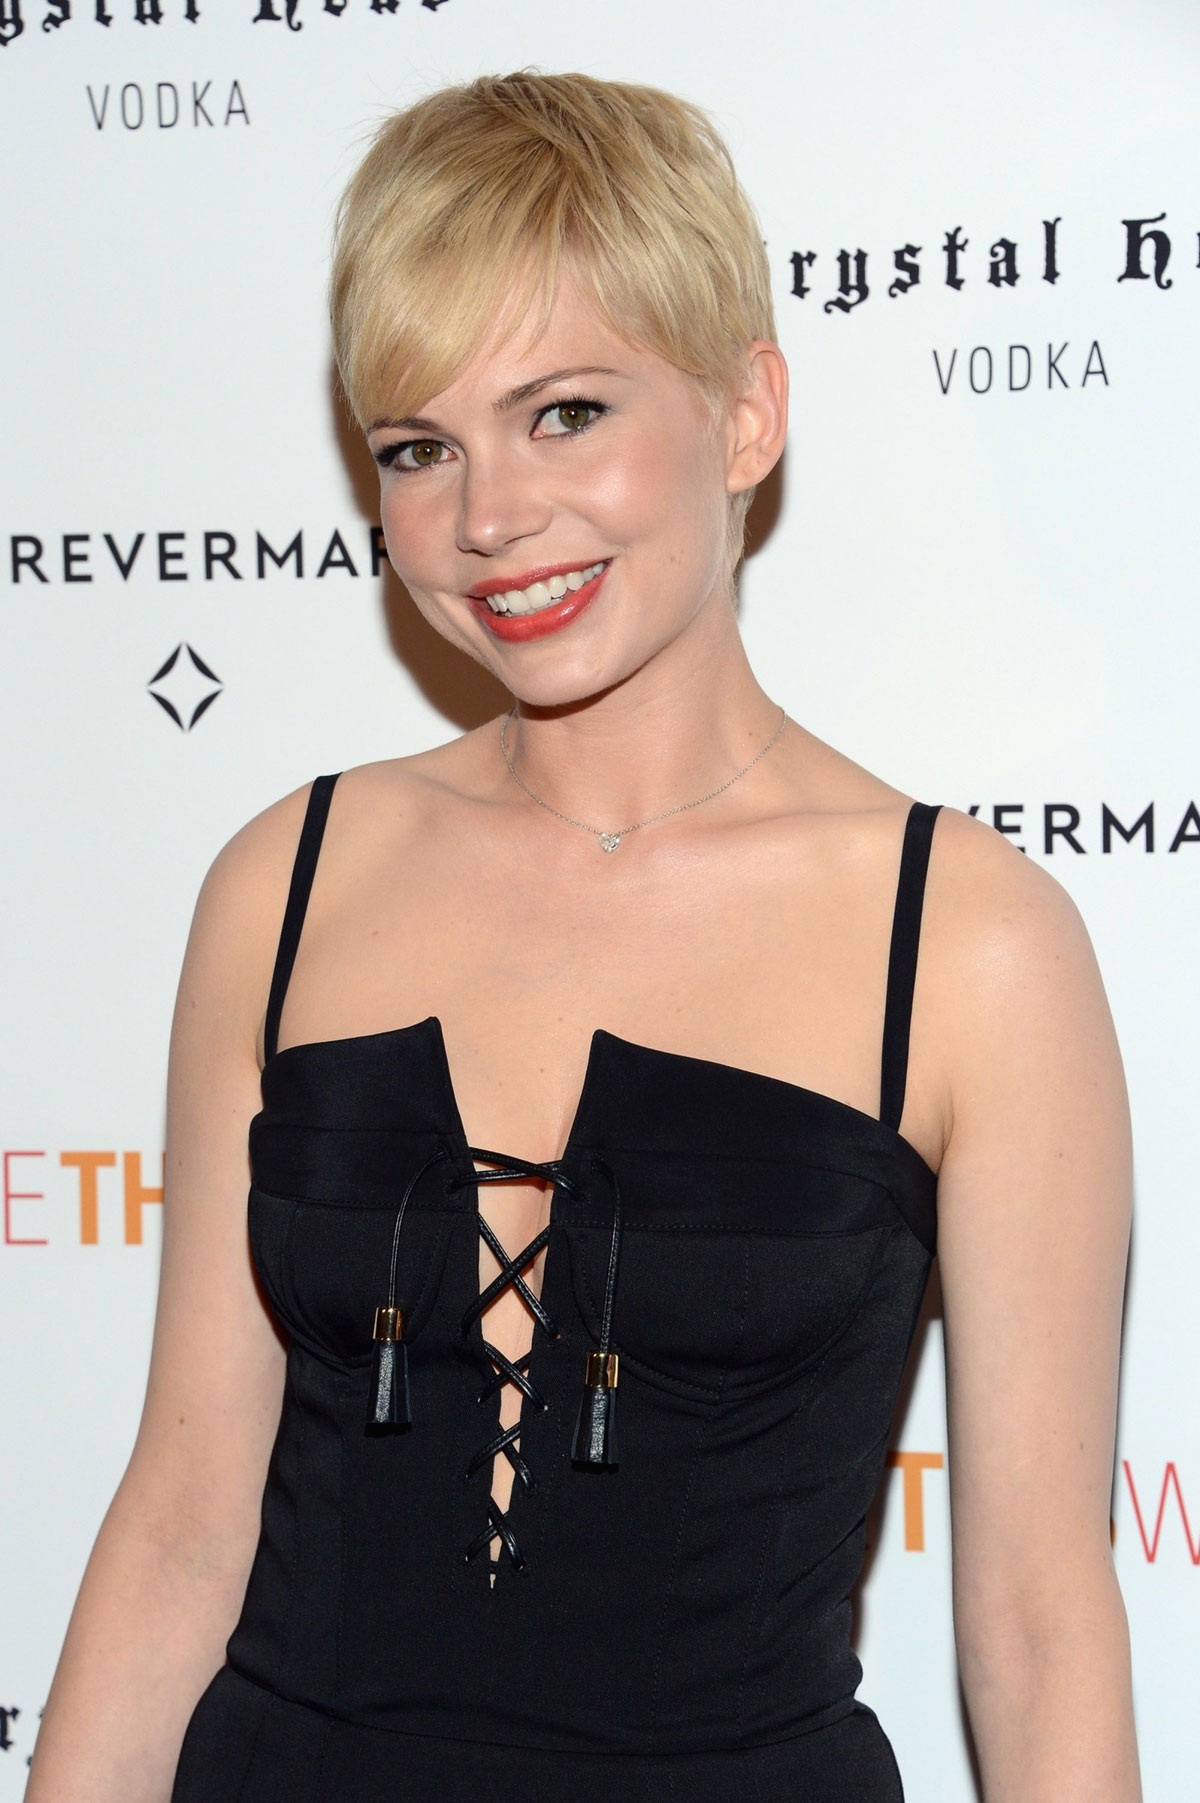 MICHELLE WILLIAMS at Take This Waltz Special Screening in New York ... Michelle Williams